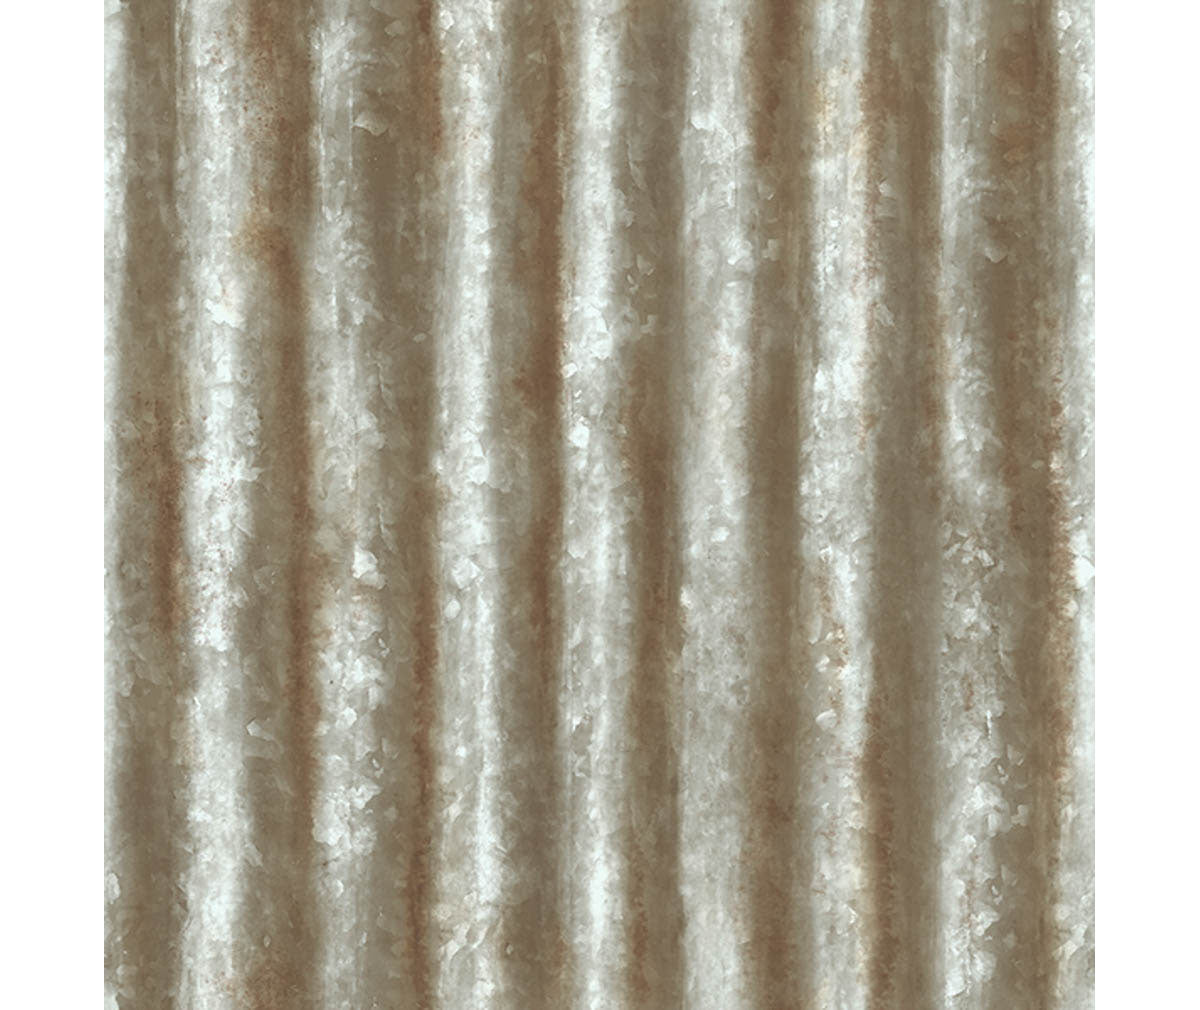 Corrugated Metal Grey Industrial Texture Wallpaper available at Barrydowne Paint